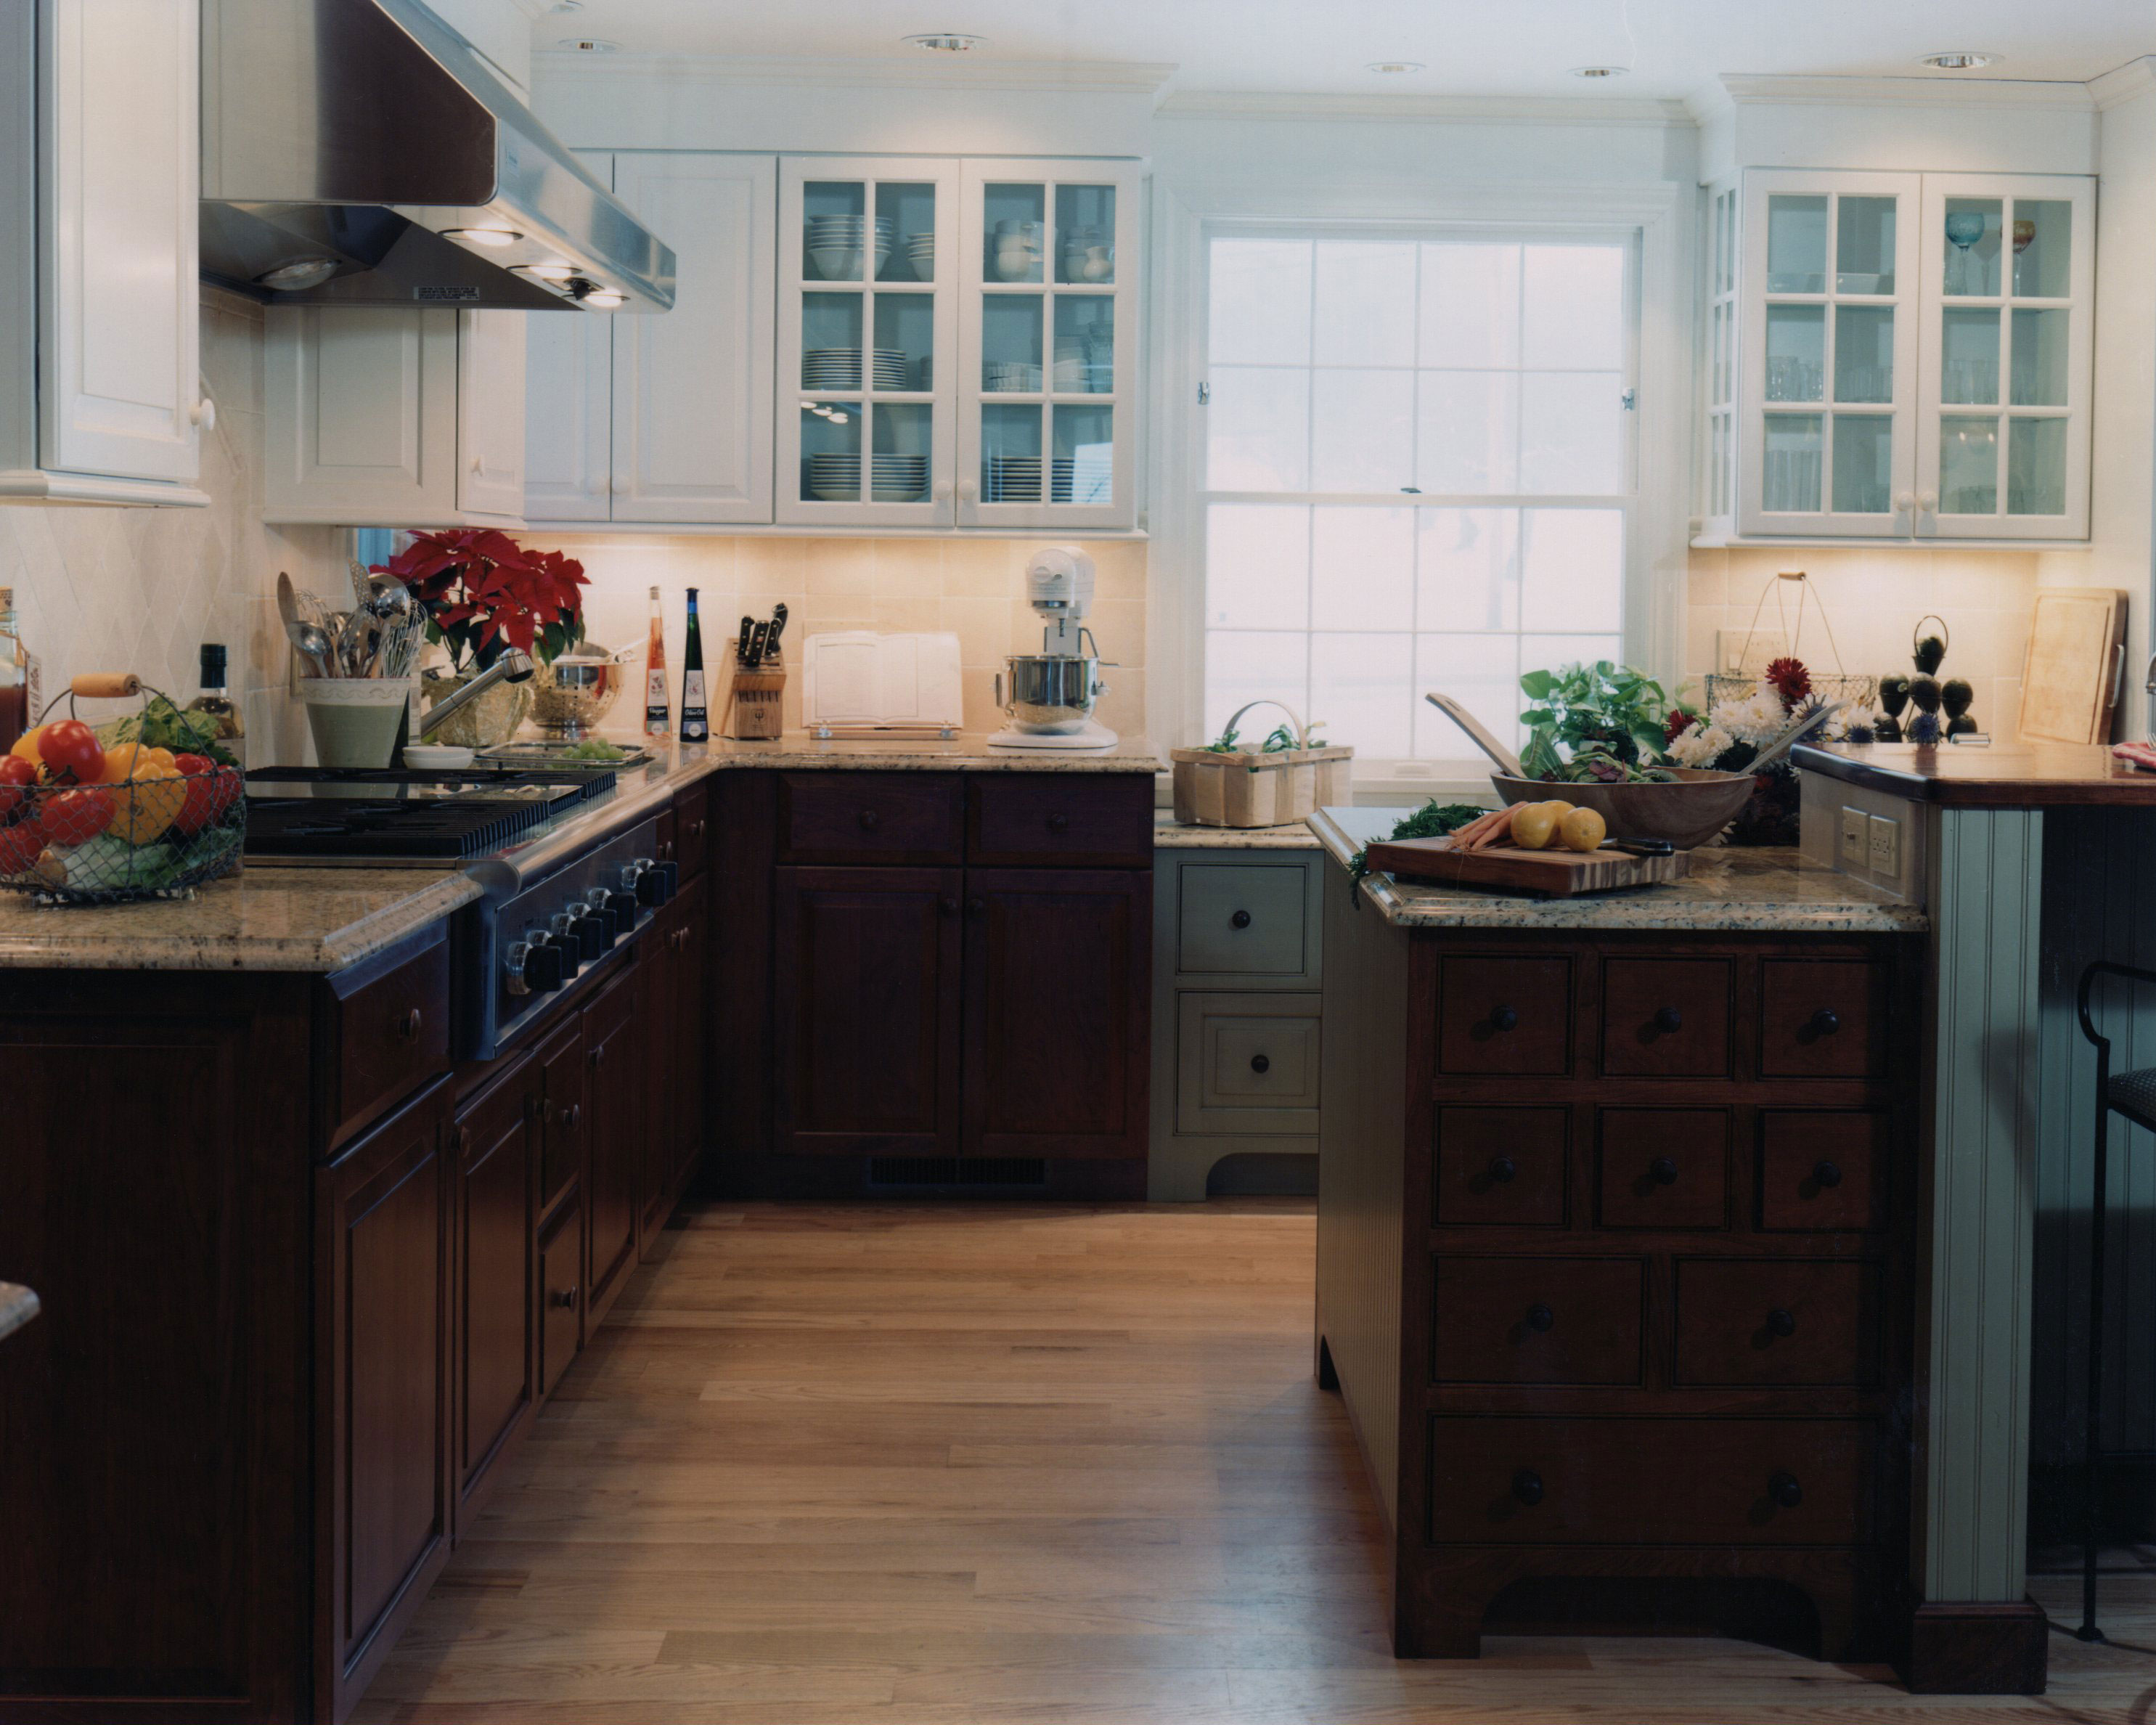 Black Base Cabinets White Upper Cabinets House Reno On Pinterest Painted Kitchen Cabinets